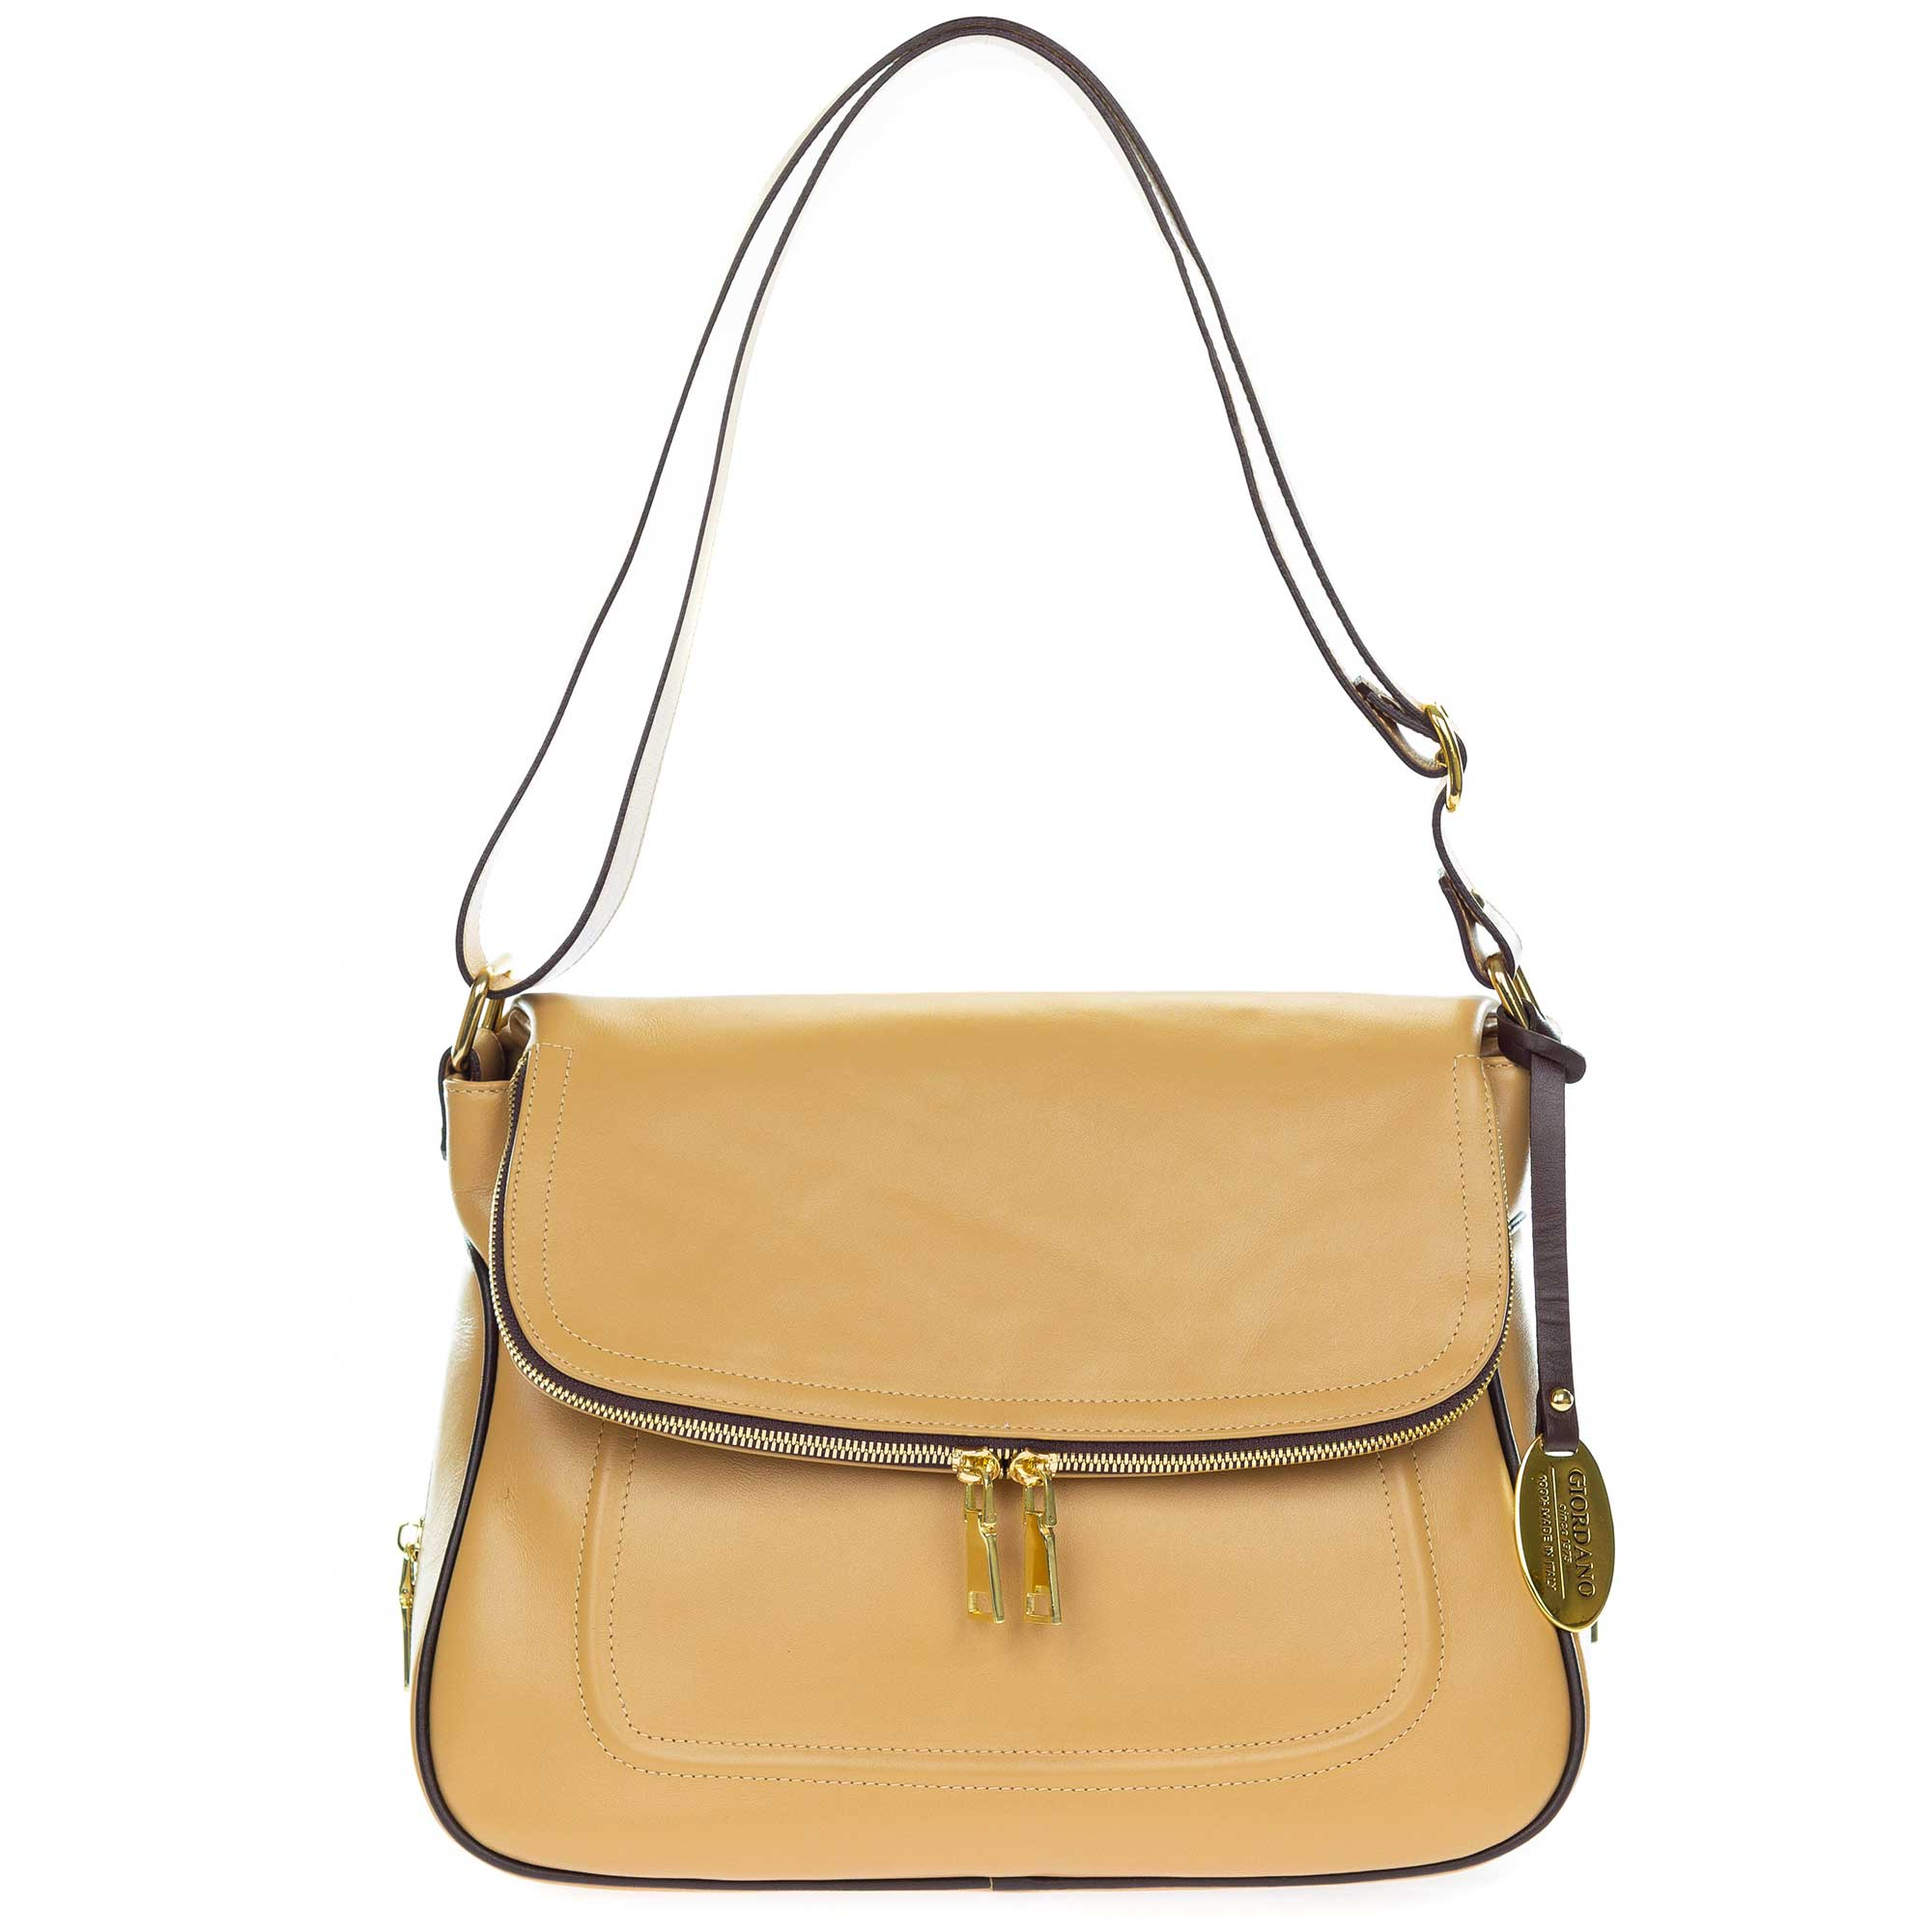 Giordano Italian Made Camel Leather Shoulder Bag with Wrap Around Zipper